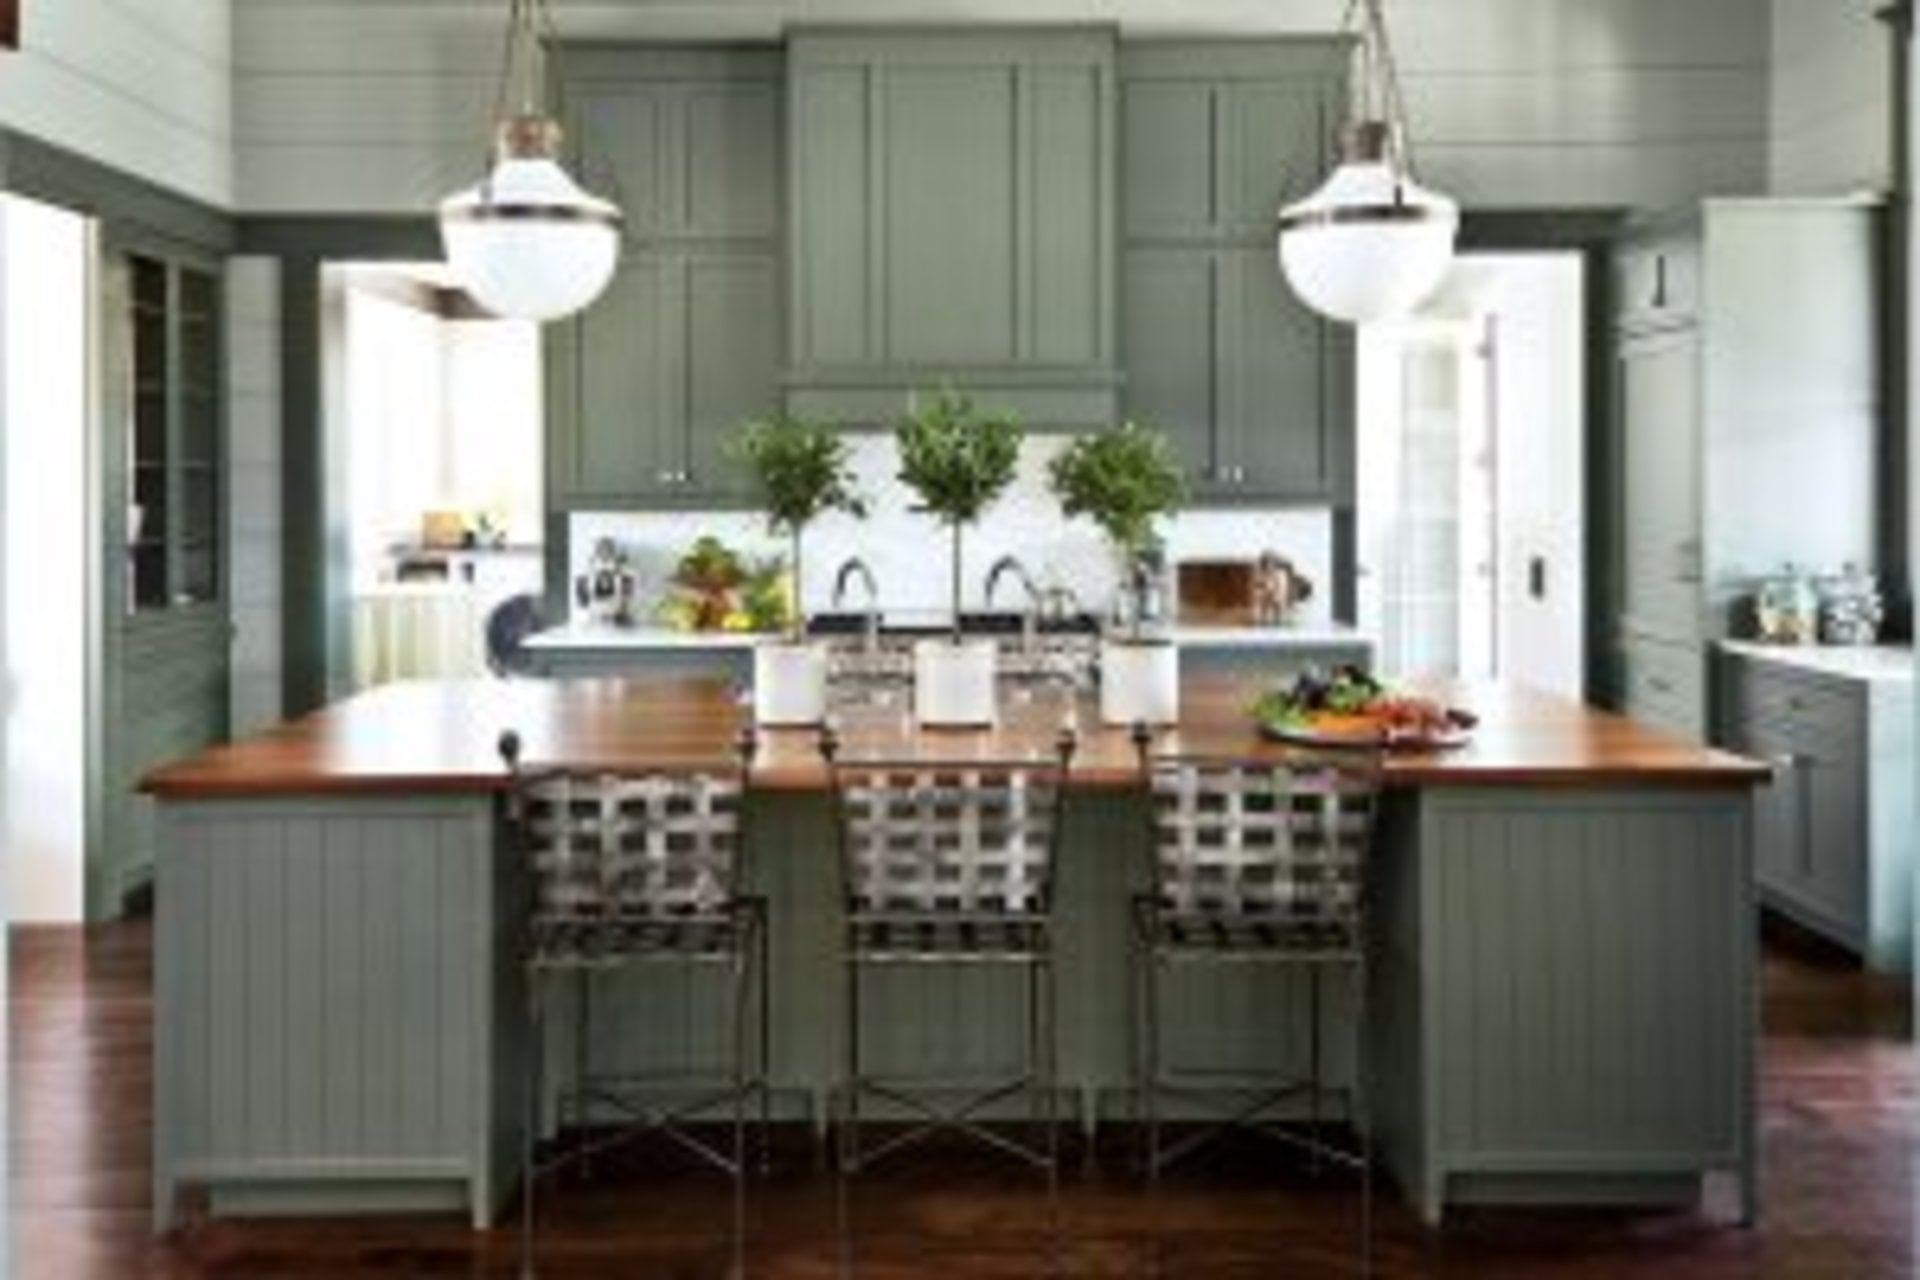 Nashville Idea House Kitchen - Decorating with Green